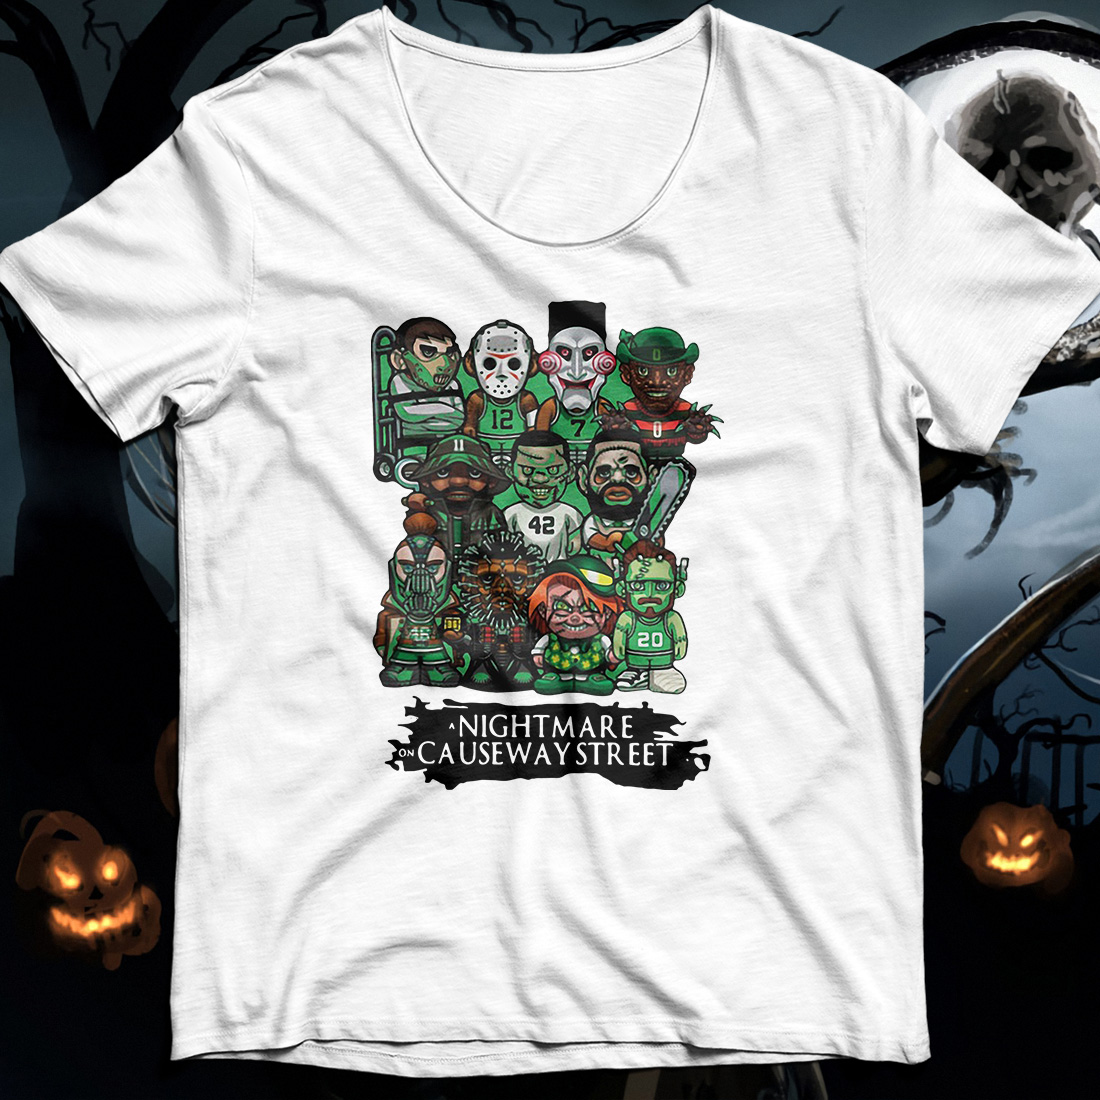 Celtics a nightmare on causeway street Shirt